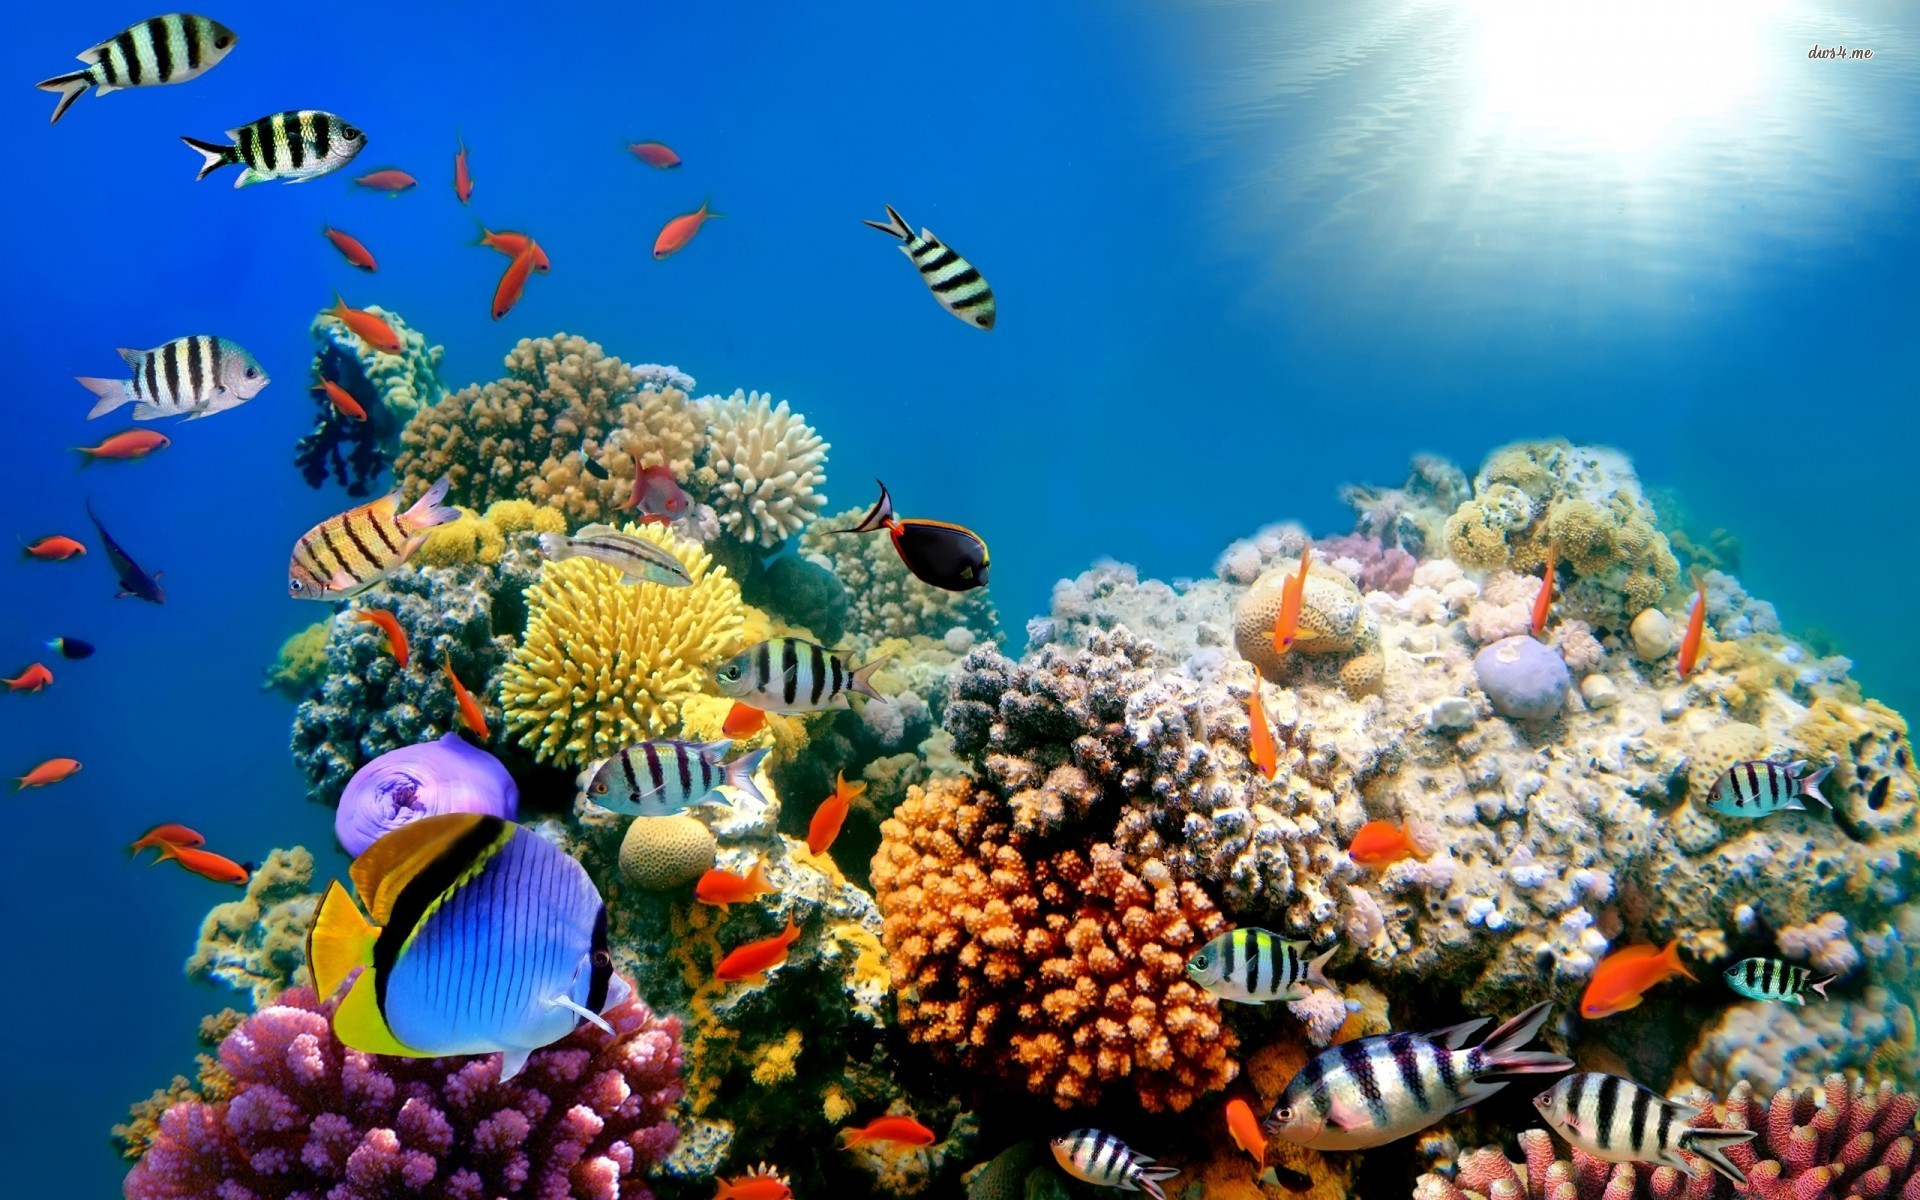 wallpaper beautiful fish background gallery 1920x1200 1920x1200